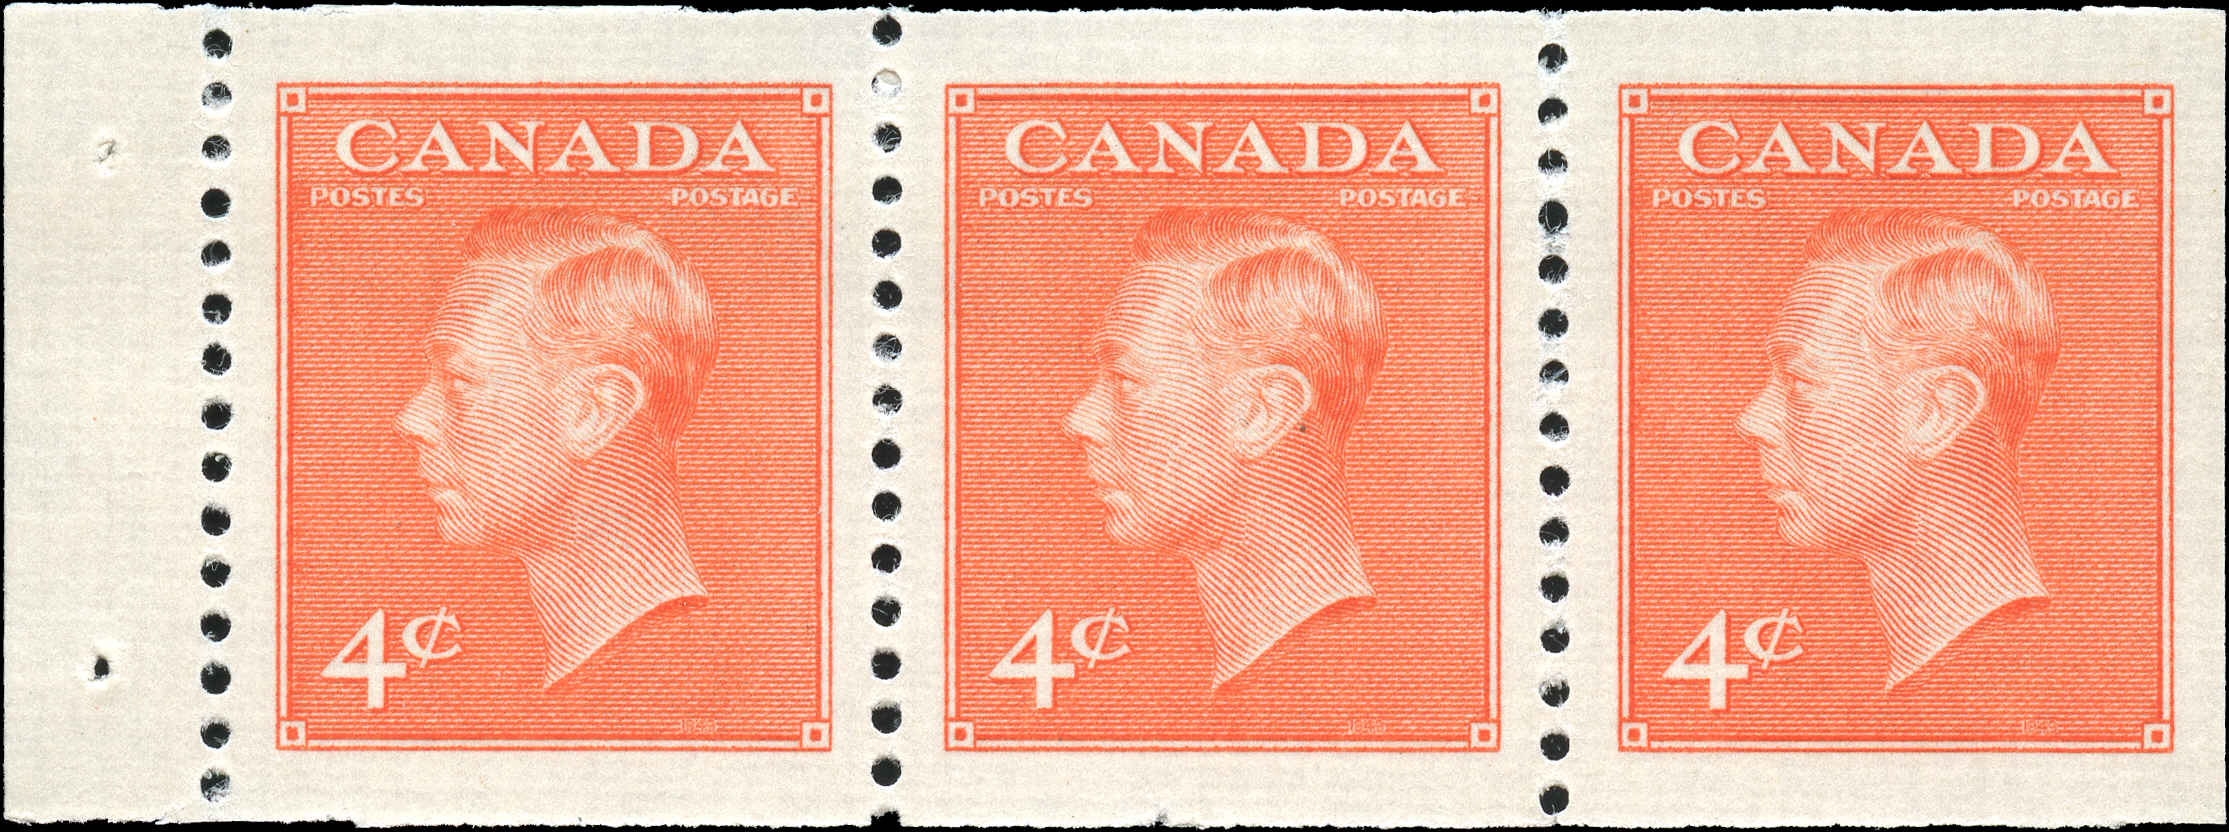 Canada #306a, Coil Pste-Pstge Issue, VF, M